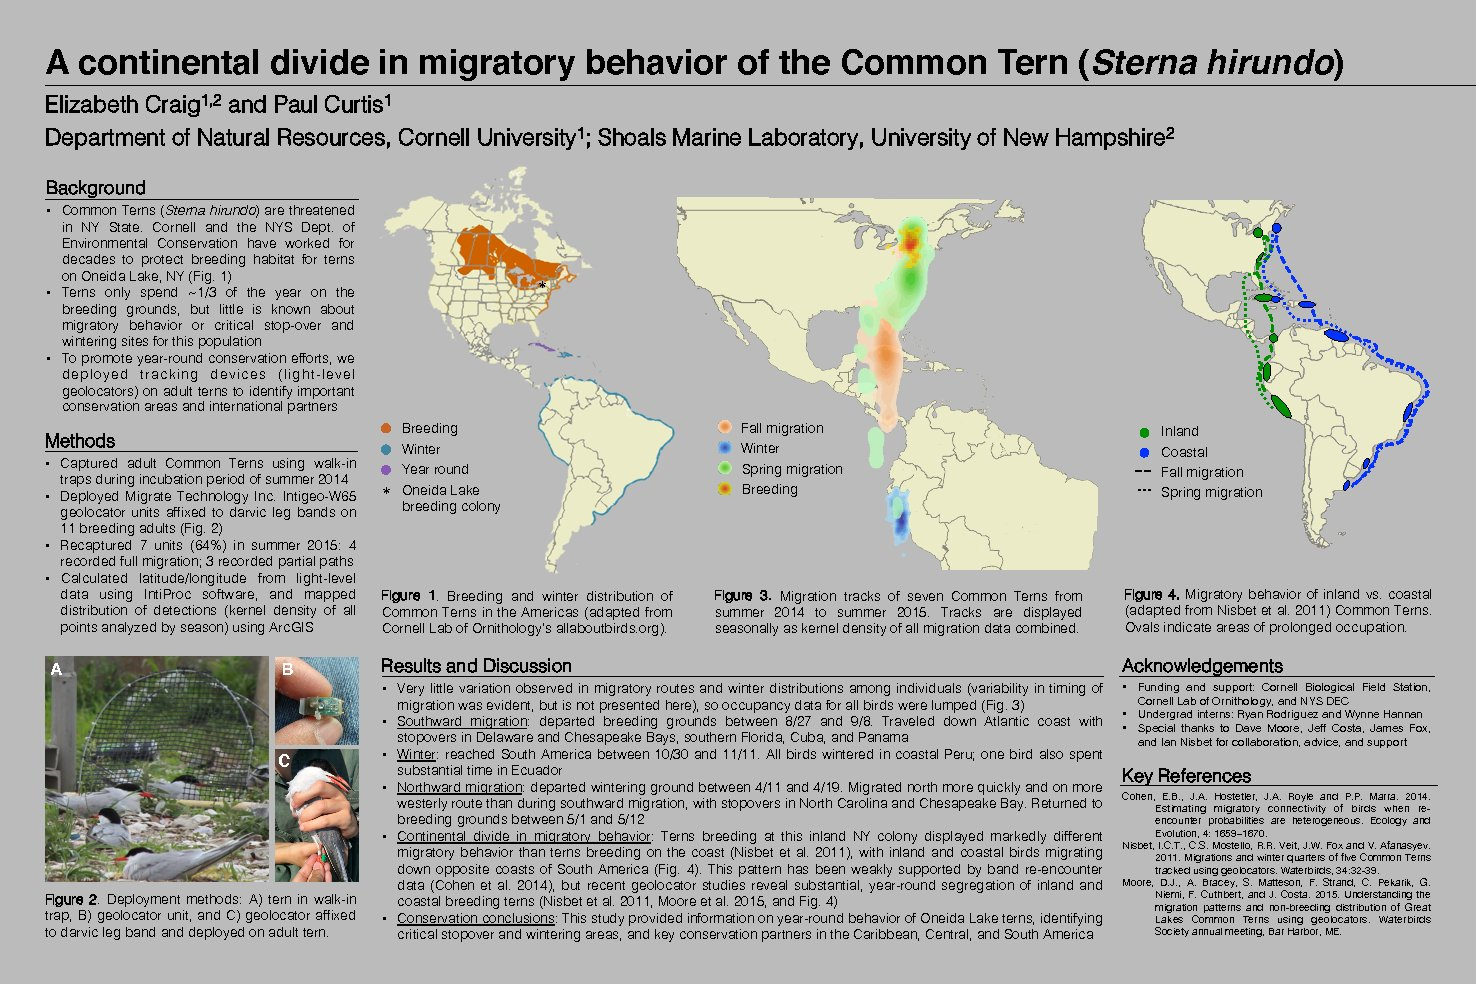 A Continental Divide In Migratory Behavior Of The Common Tern (Sterna Hirundo) by ecc79